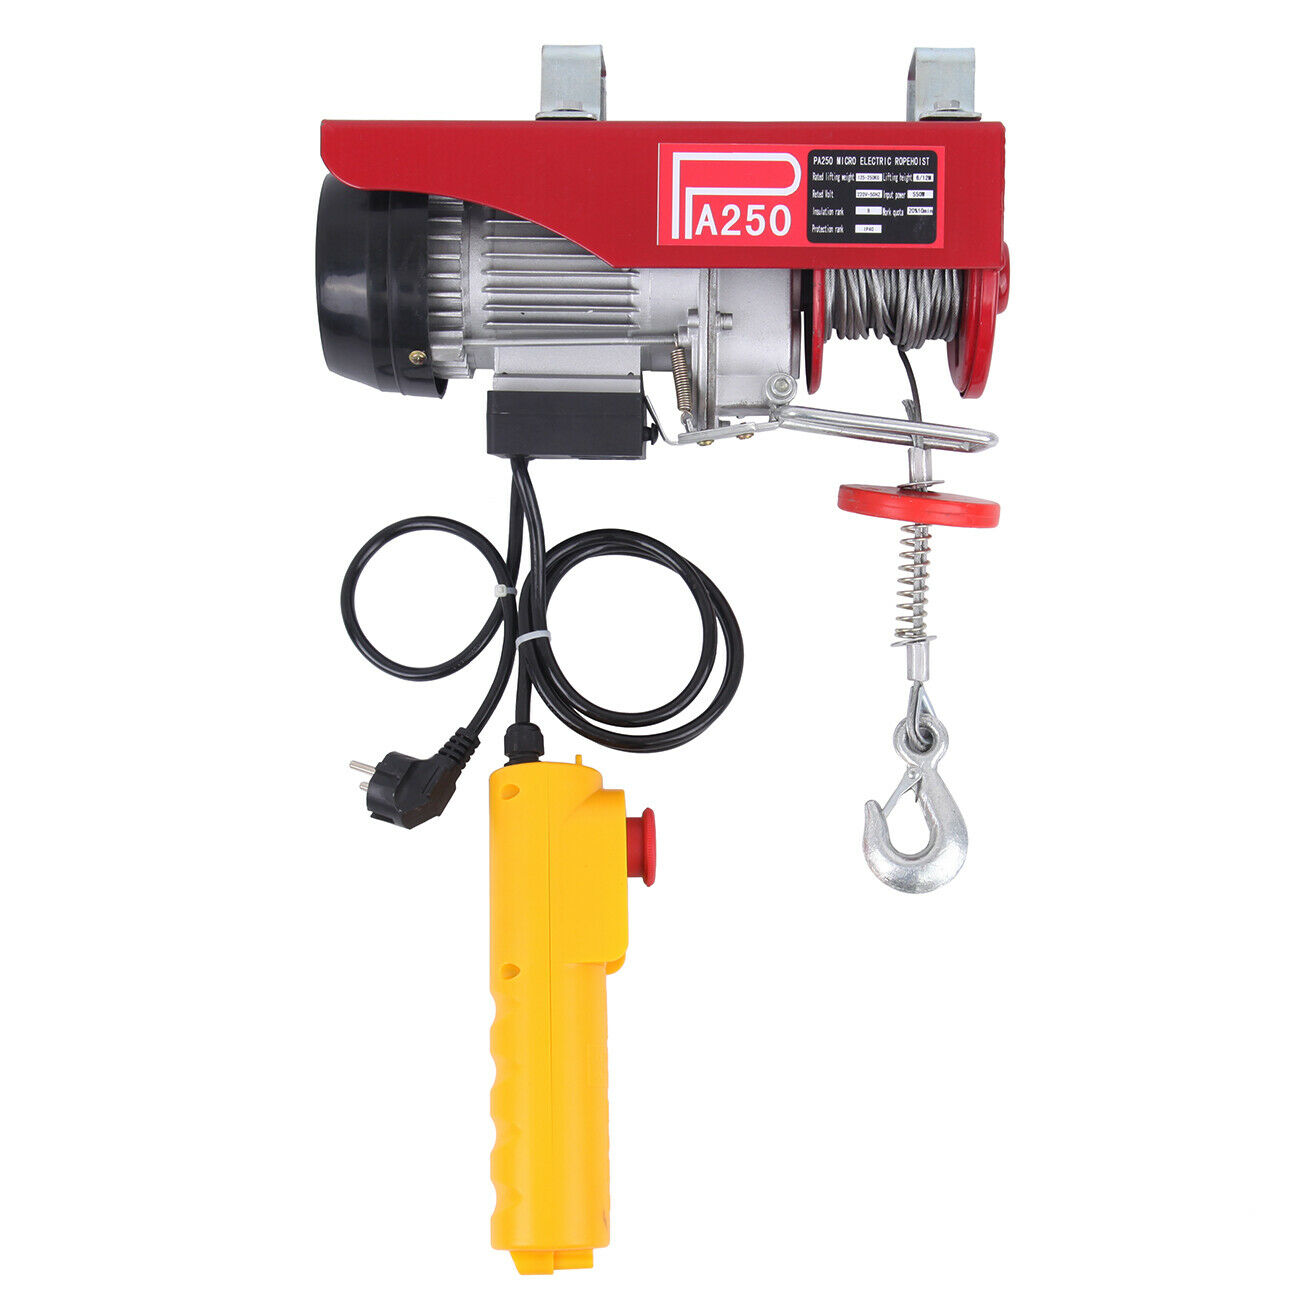 Honhill Electric Cable Winch Motor Rope Winch Stroke Cable Hoist Cable Winch Crane Winch For Boat Car Wound Load 200 600 1000KG